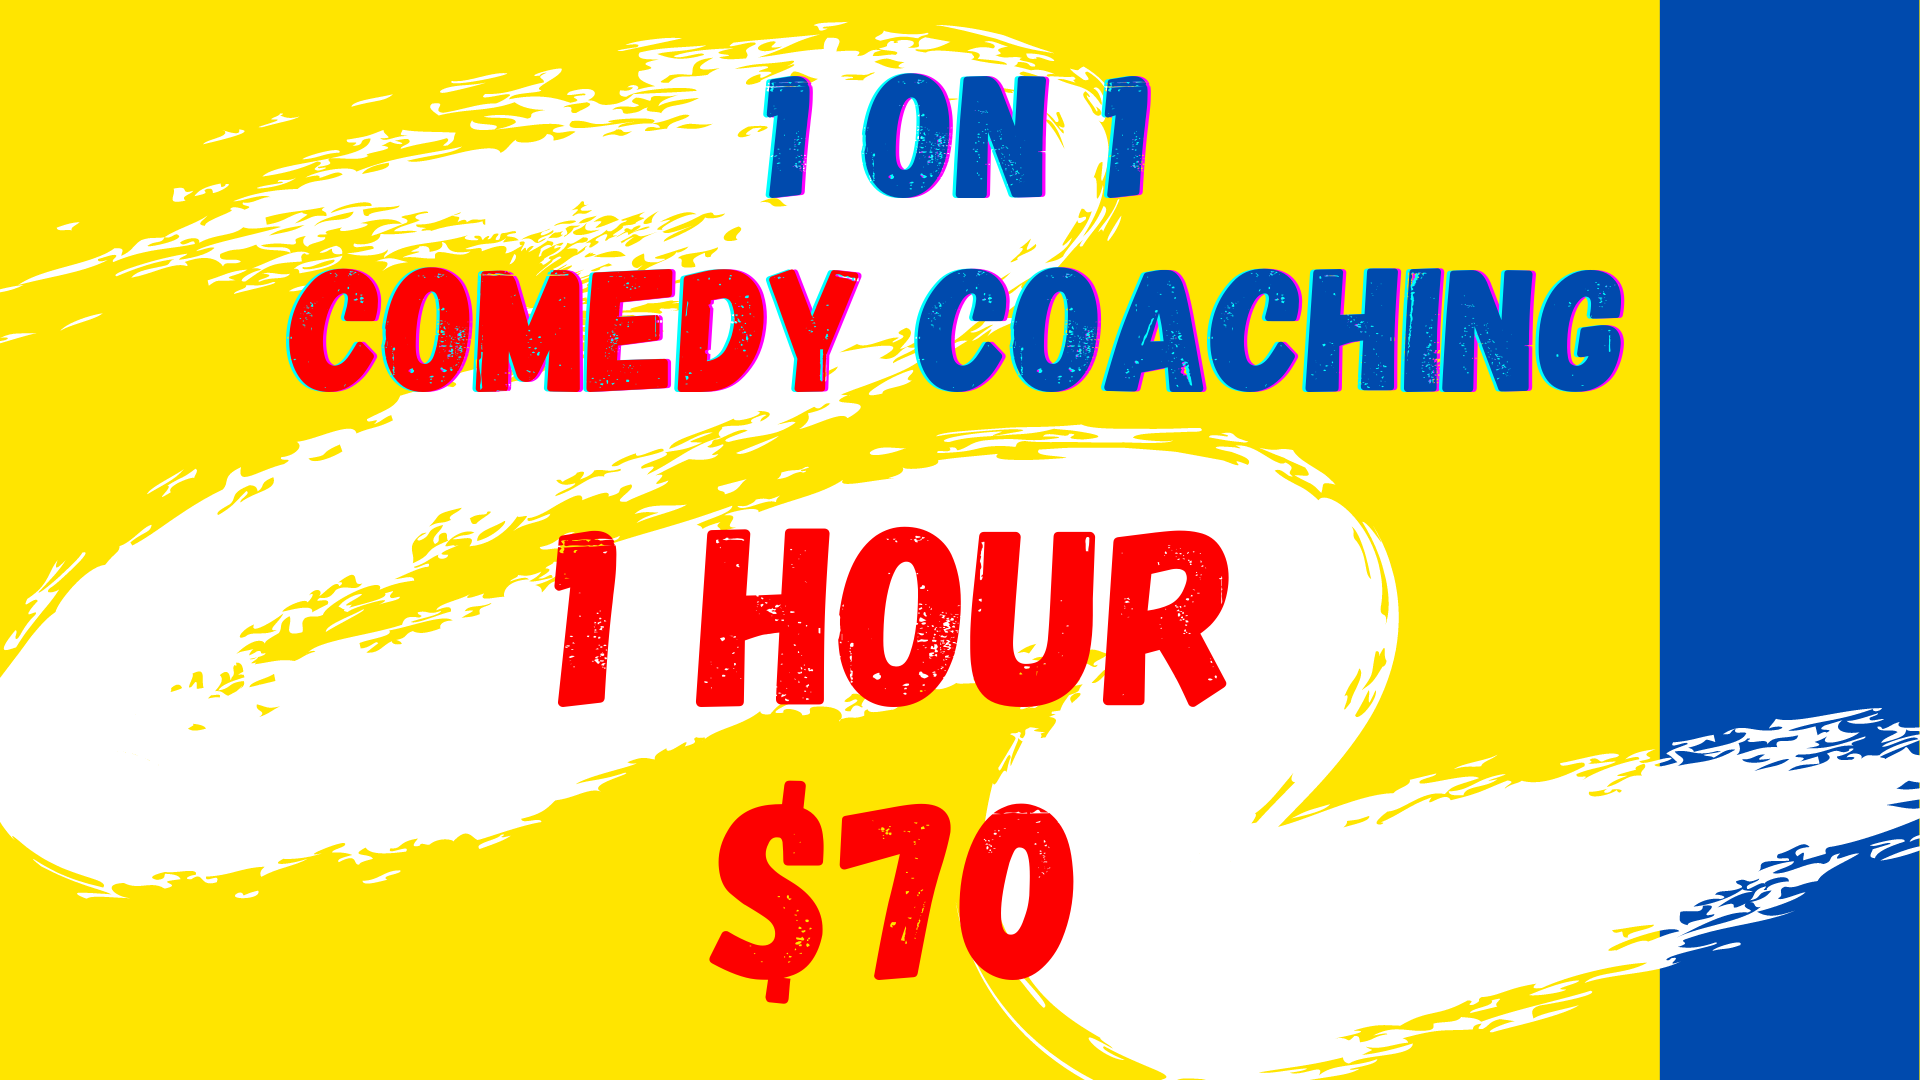 1 on 1 Comedy Coaching - 1hr $70